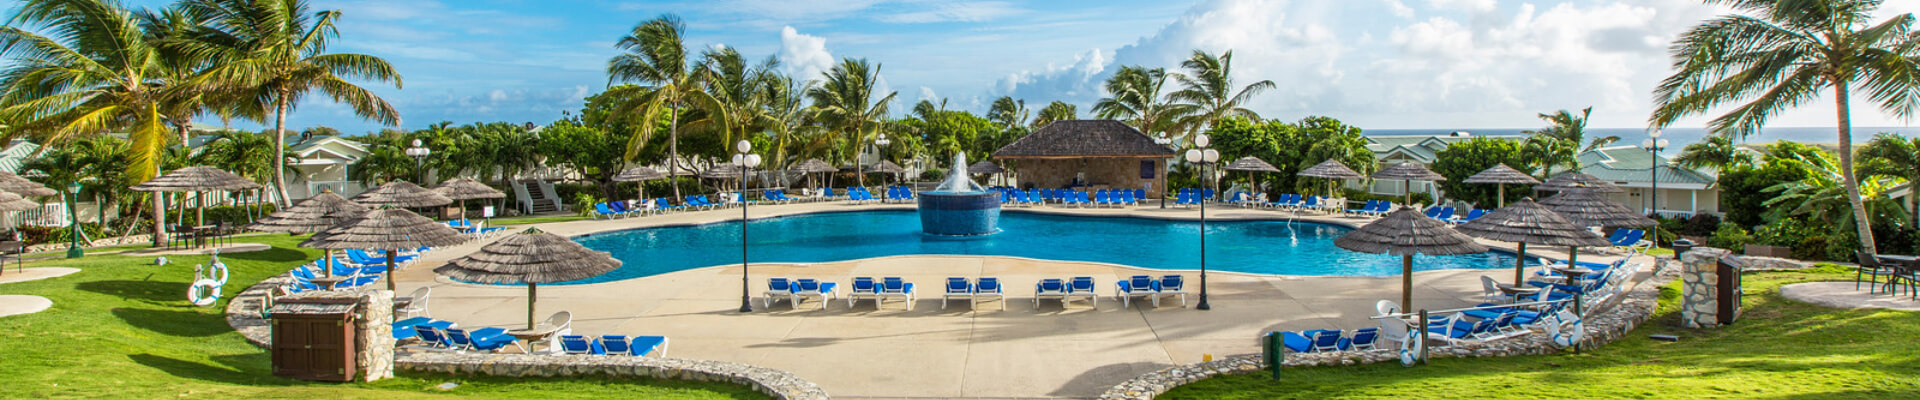 Caribbean Holidays FAQs - Elite Island Resorts Caribbean